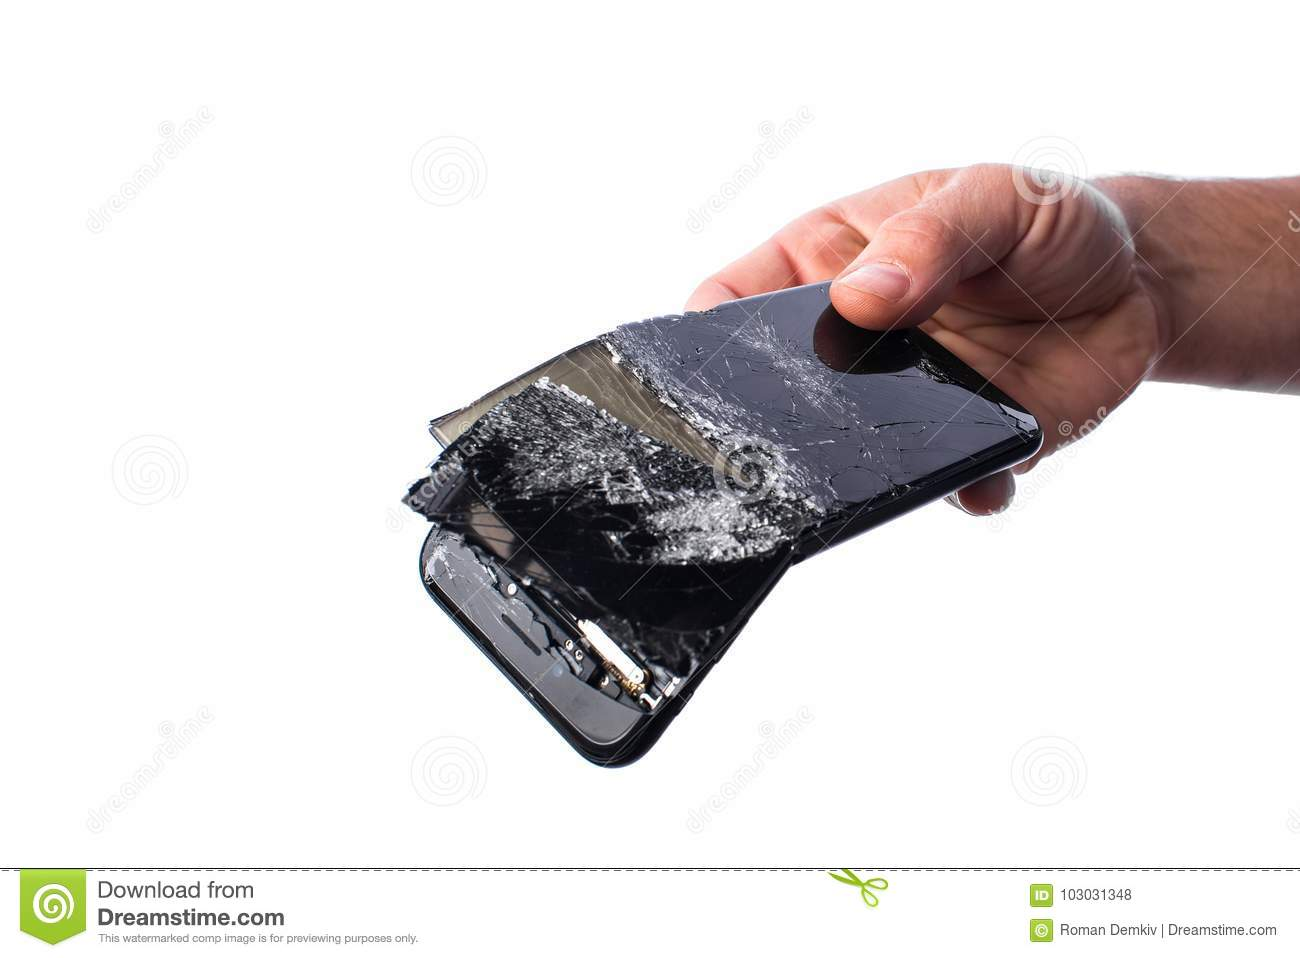 Hand holds a broken mobile phone, a white background, a business concept